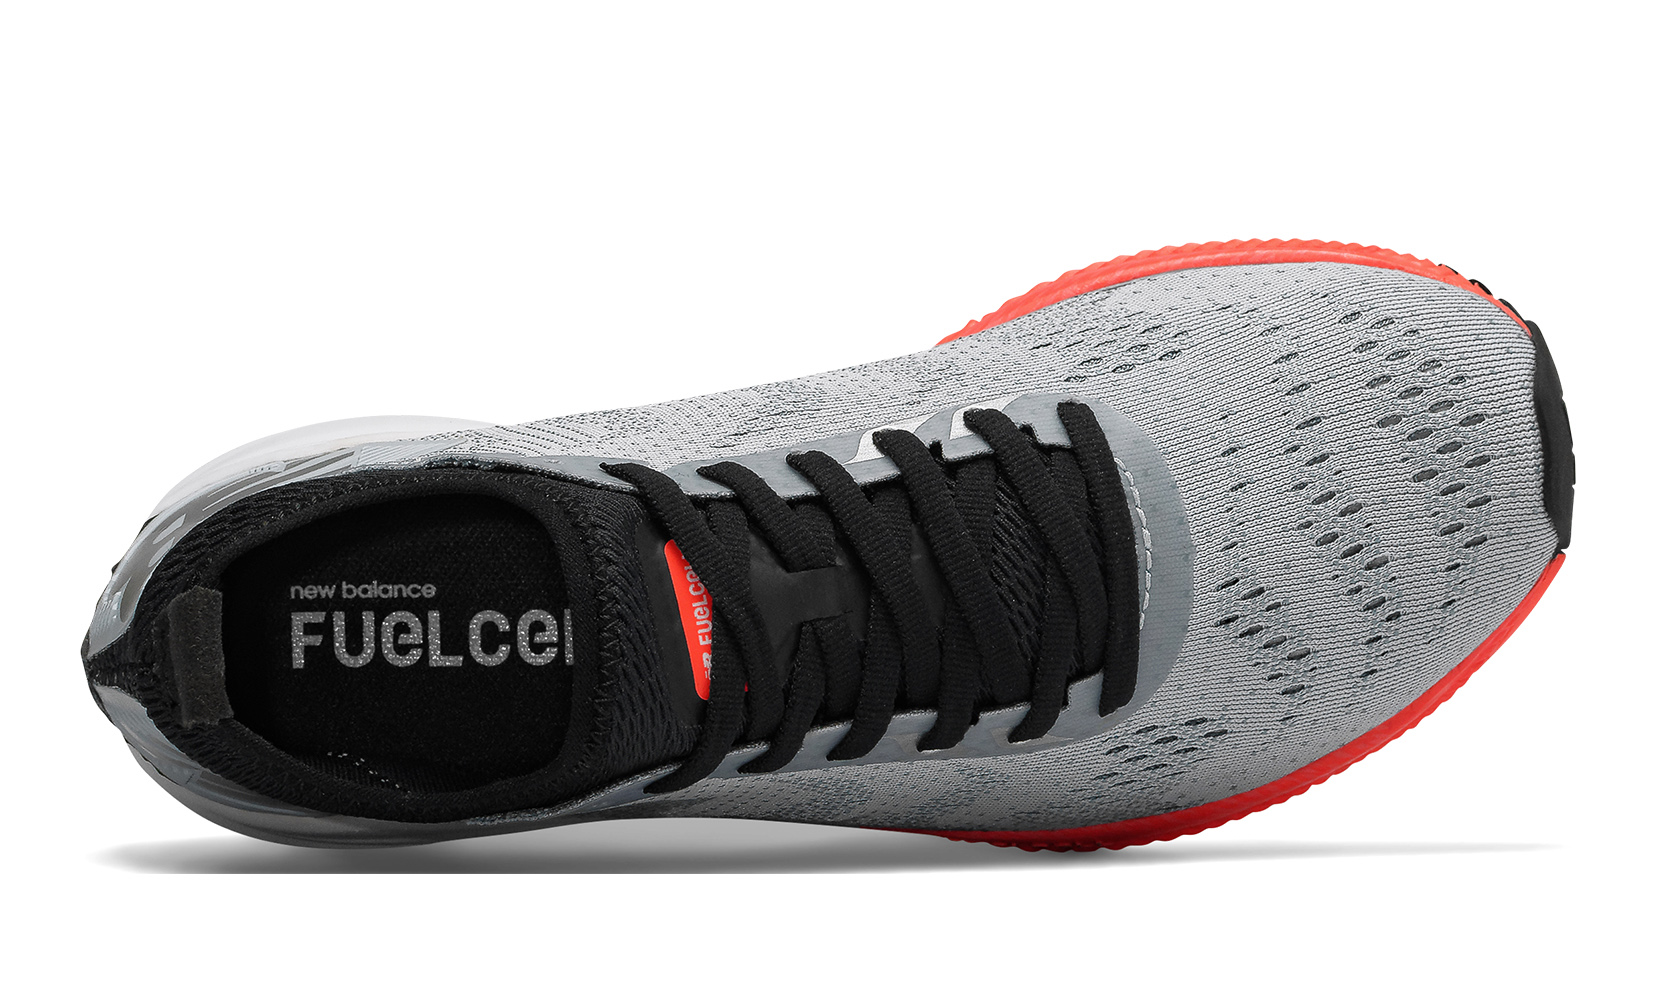 Жіноче взуття для бігу New Balance FuelCell Impulse  WFCIMGP | New Balance